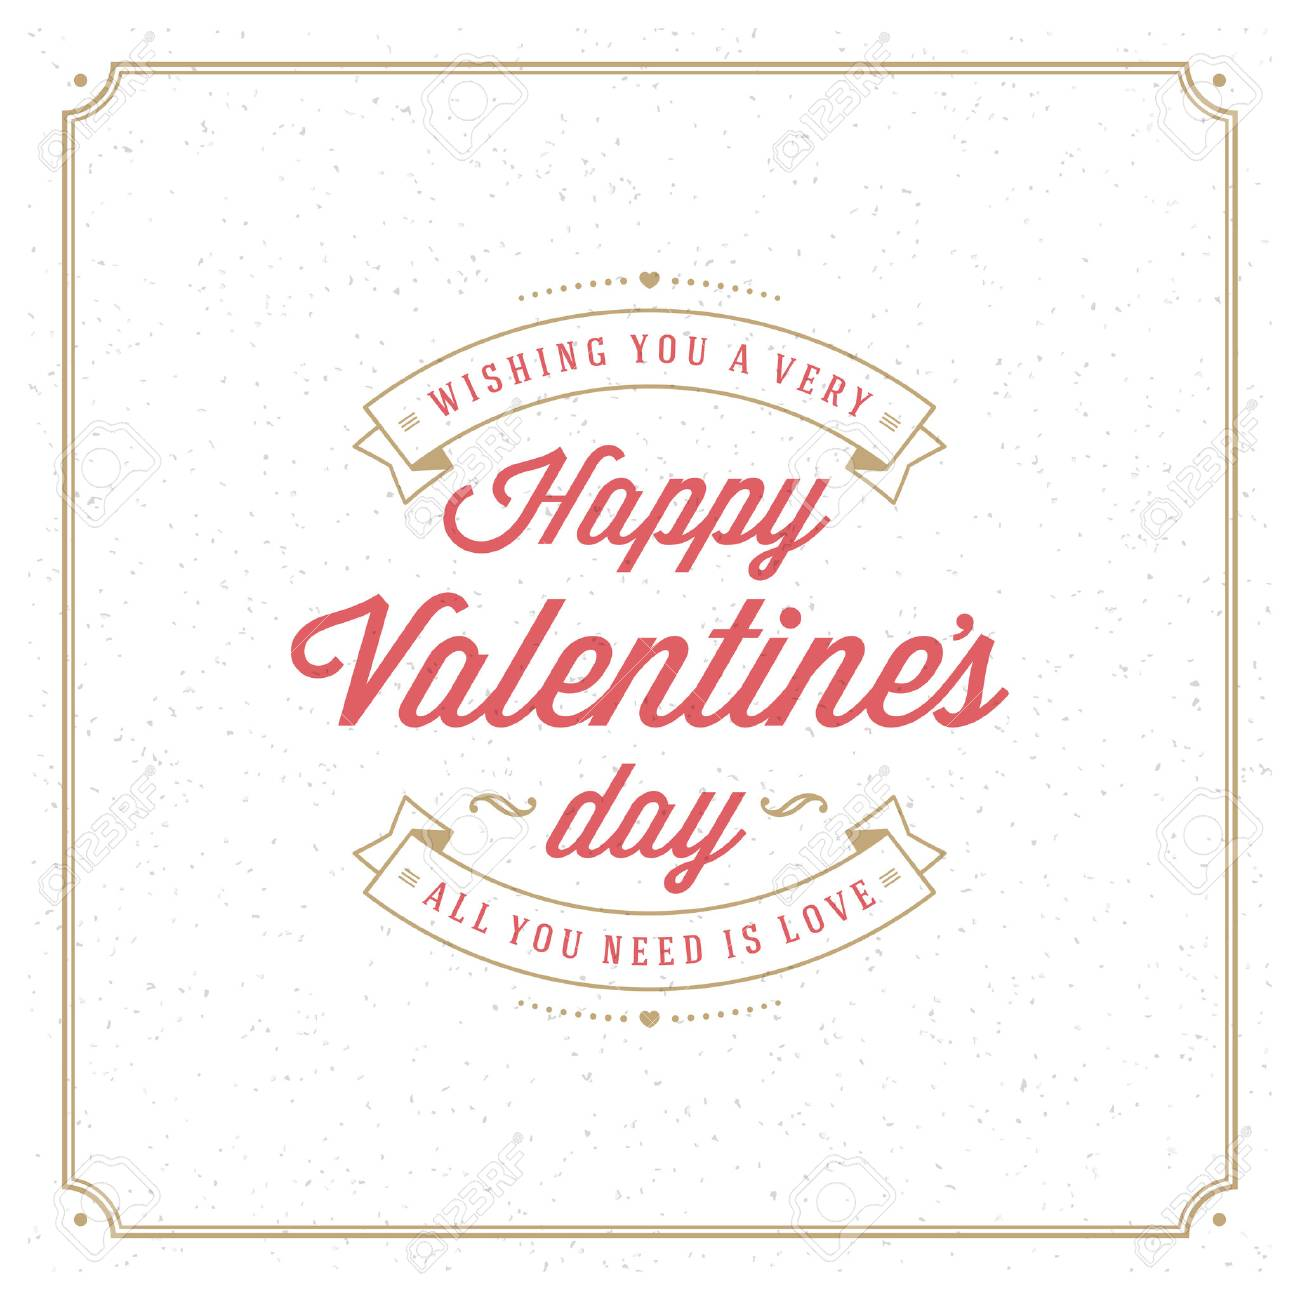 Happy Valentine's Day Greeting Card or Poster Vector illustration. Retro typography design and texture background. Happy Valentines Day background, Valentine Card, Love Heart. - 49971991